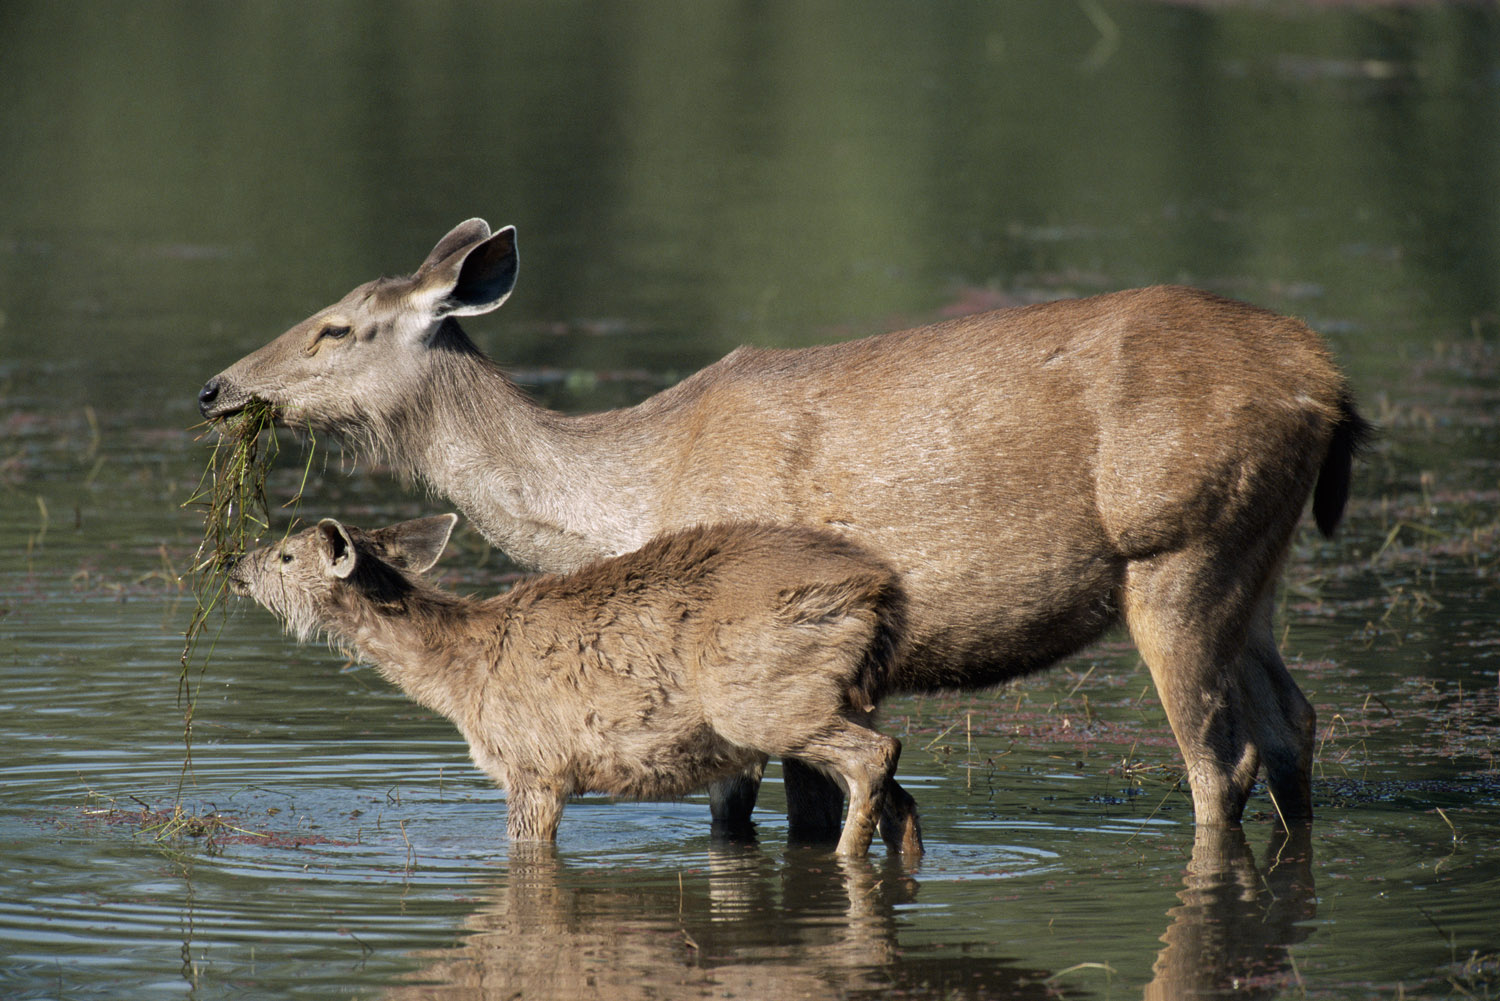 Sambar deer feeding with young, Ranthambhore National Park, Rajasthan, India